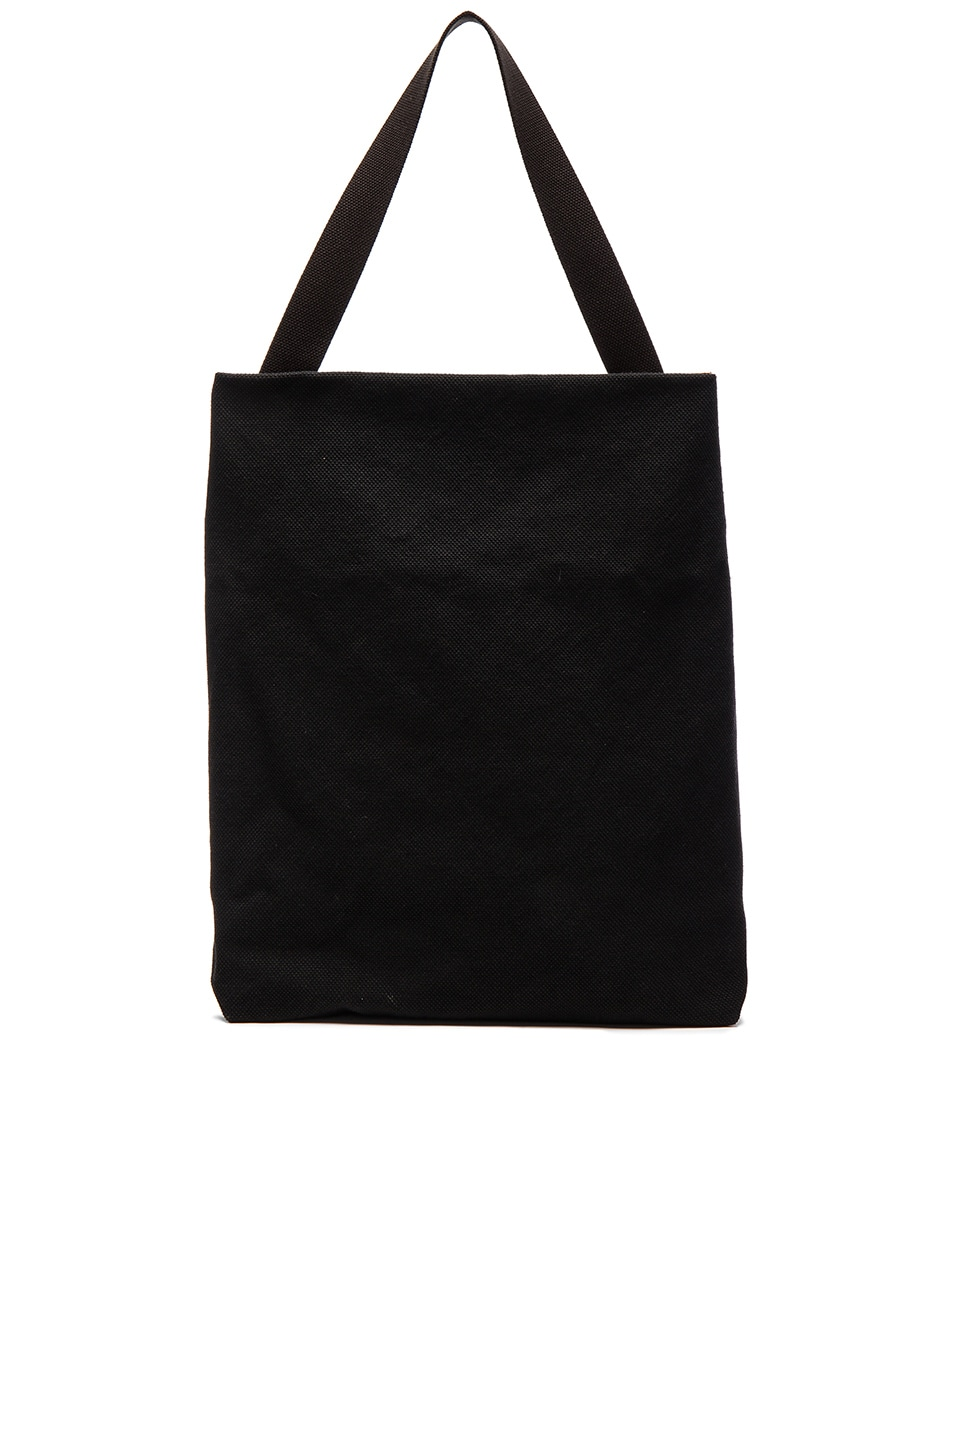 Image 1 of Ann Demeulemeester Tote in Black